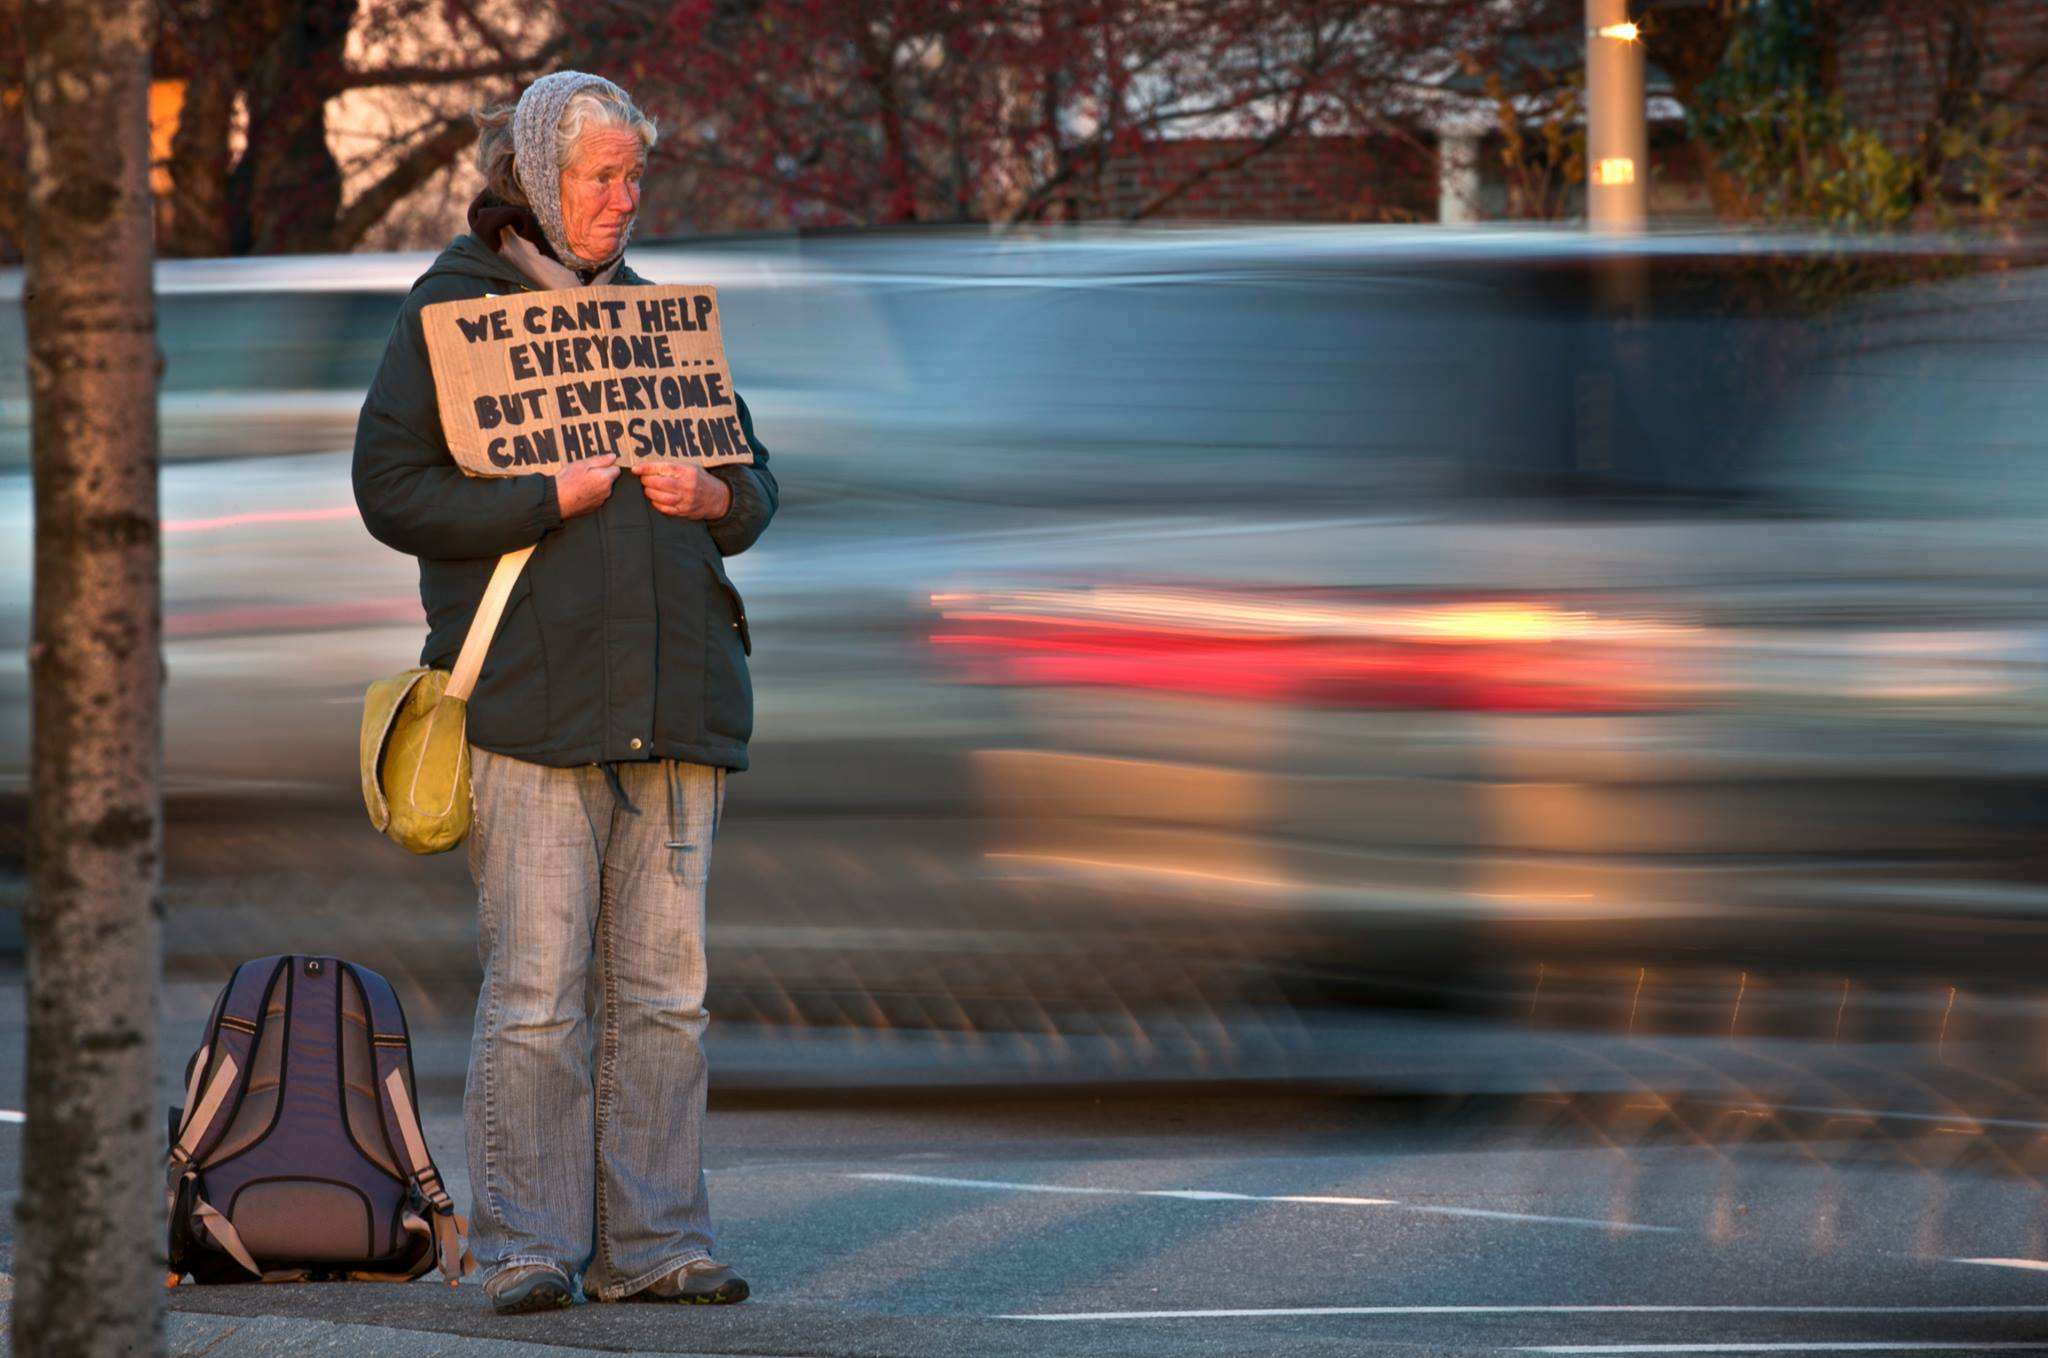 ACTION ALERT: Please write our City Council and demand they add a warning to the panhandling ban on narrow medians